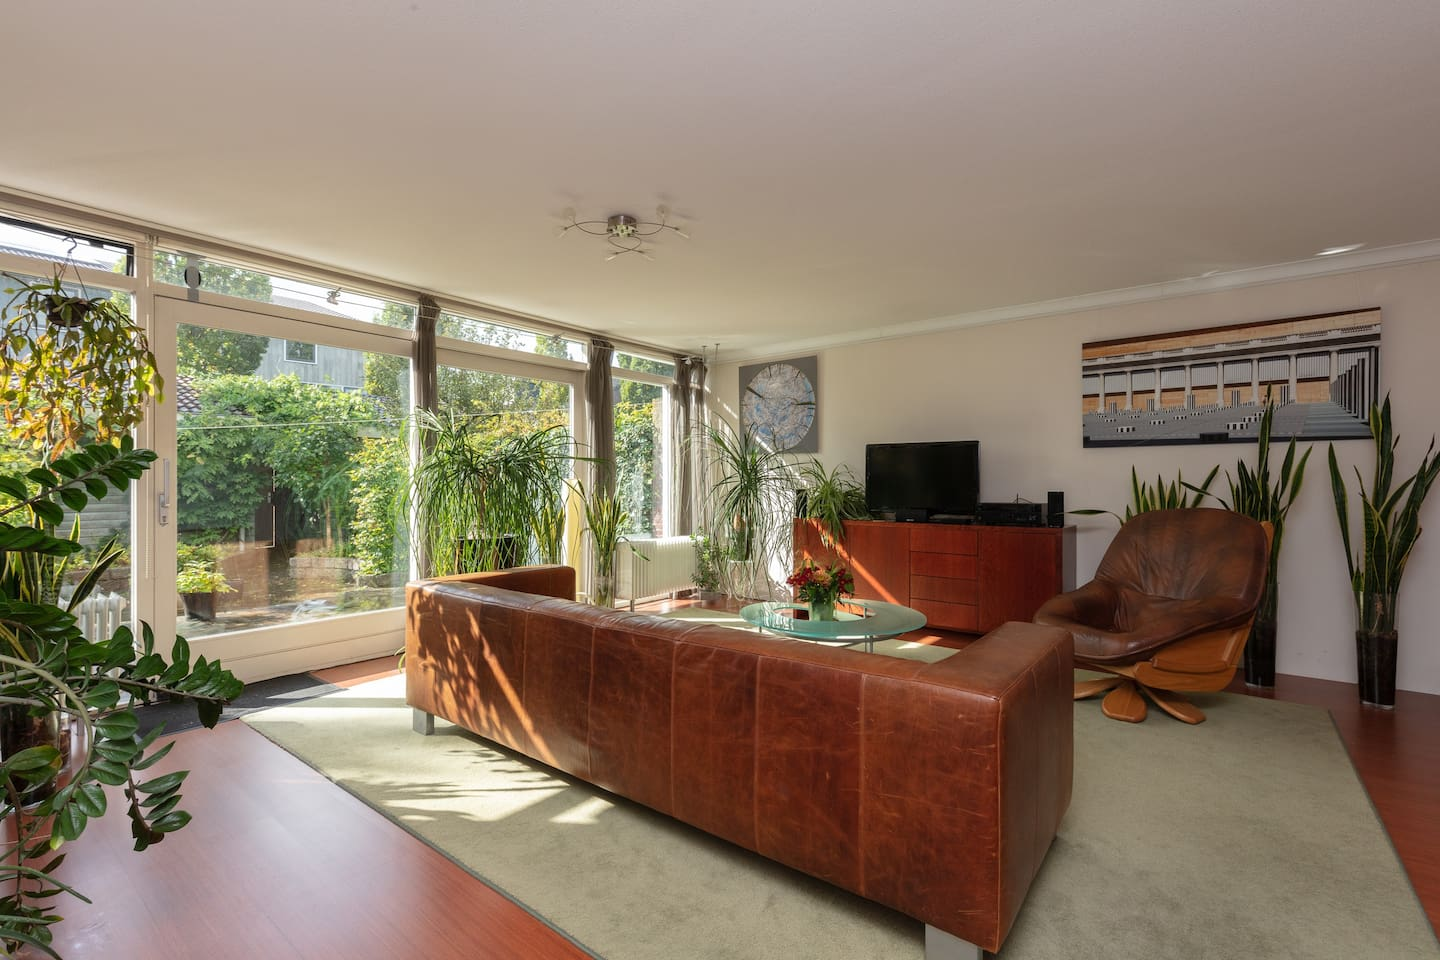 Living room with view in the garden